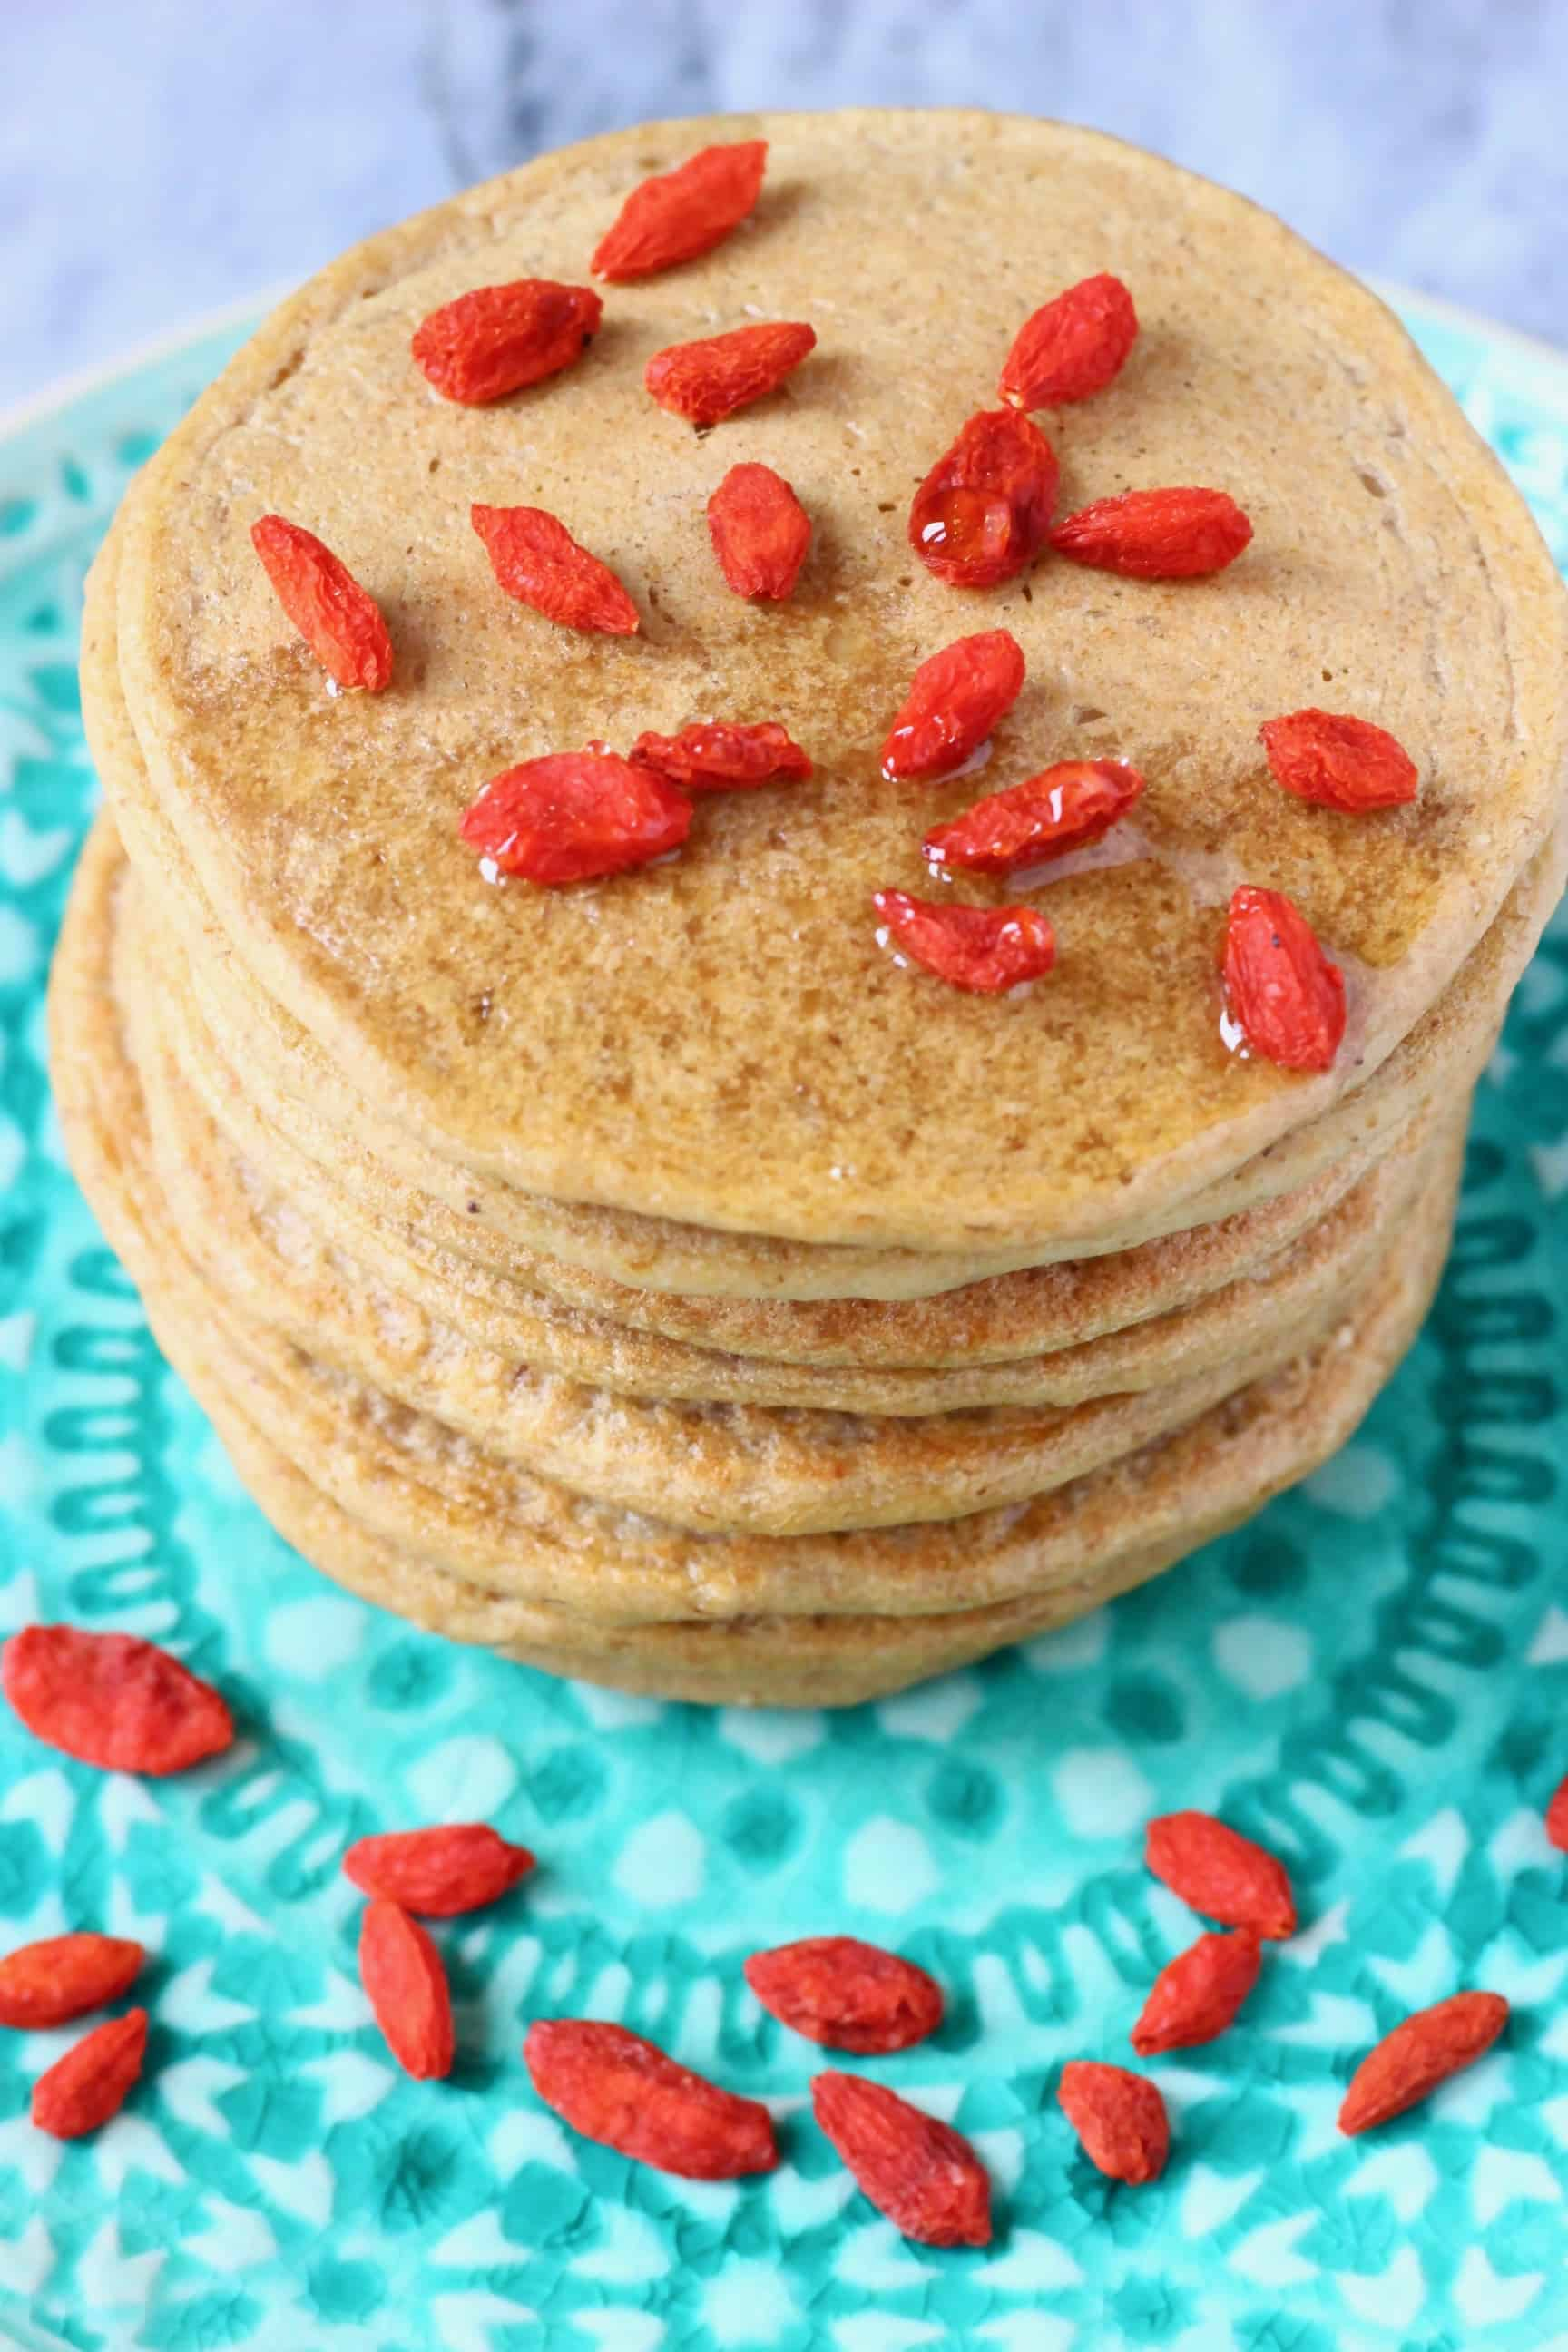 A stack of banana oatmeal pancakes decorated with goji berries on a green plate against a marble background